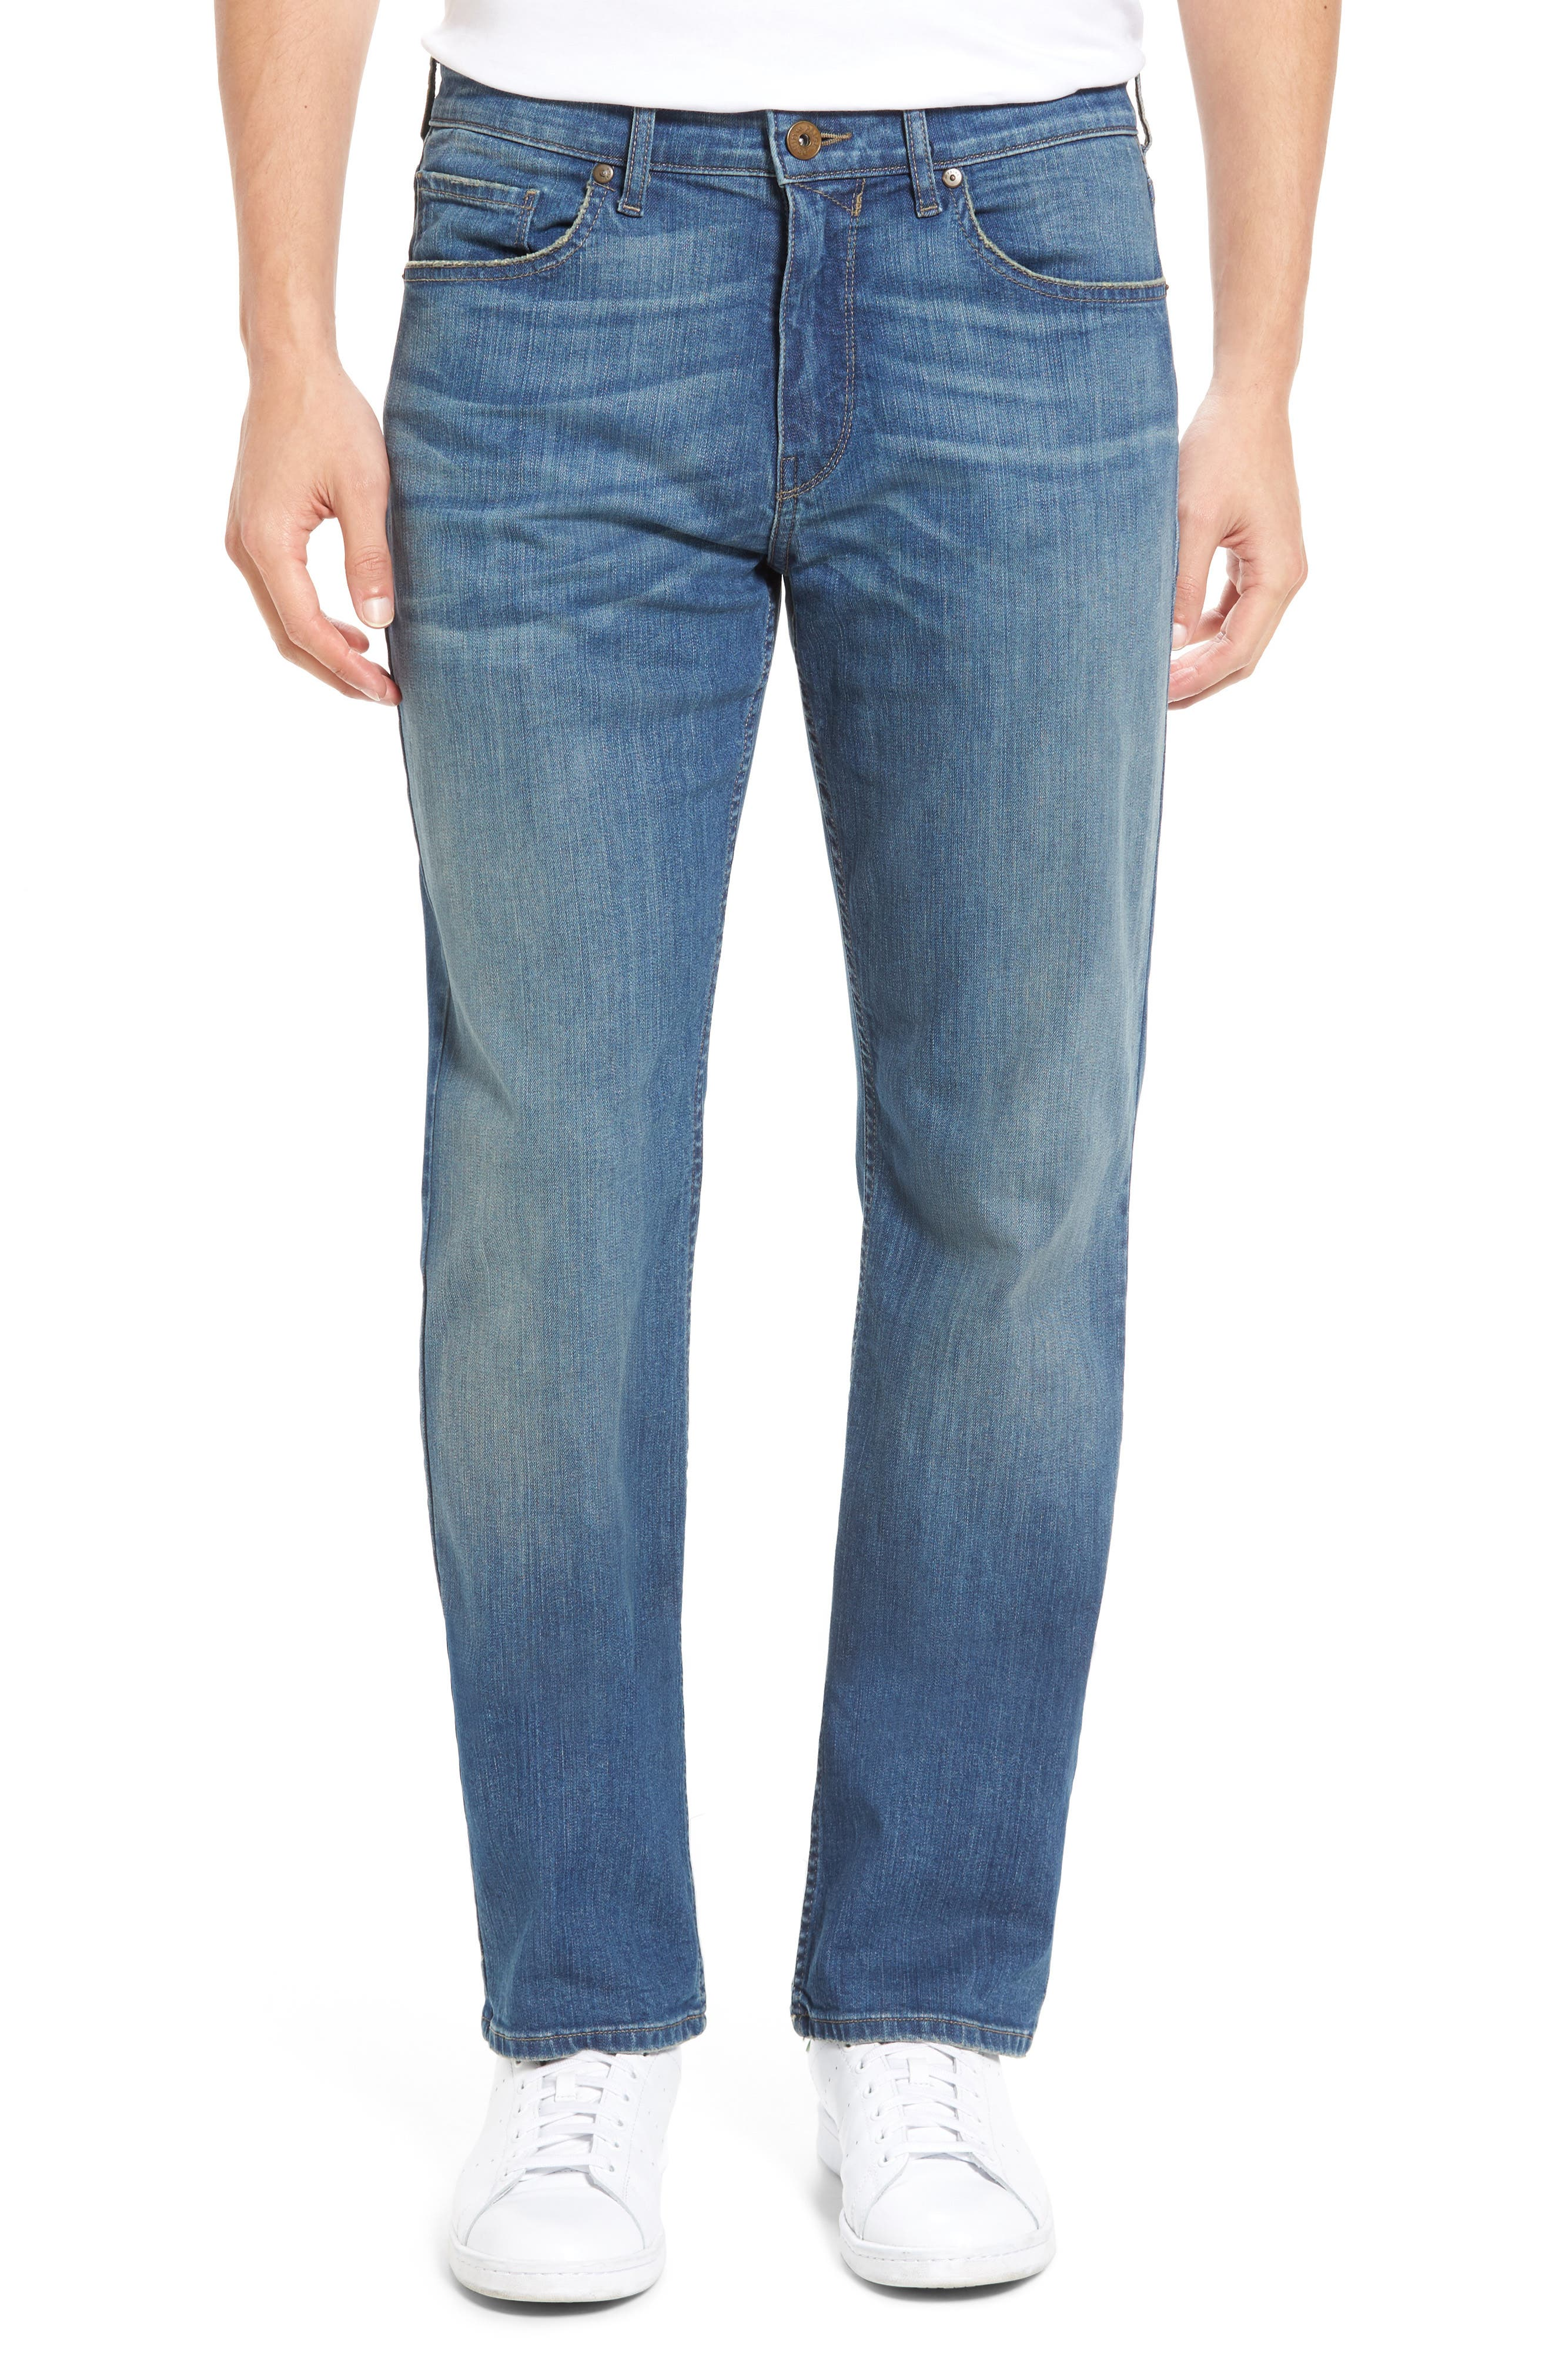 Legacy - Doheny Relaxed Fit Jeans,                         Main,                         color, Cash